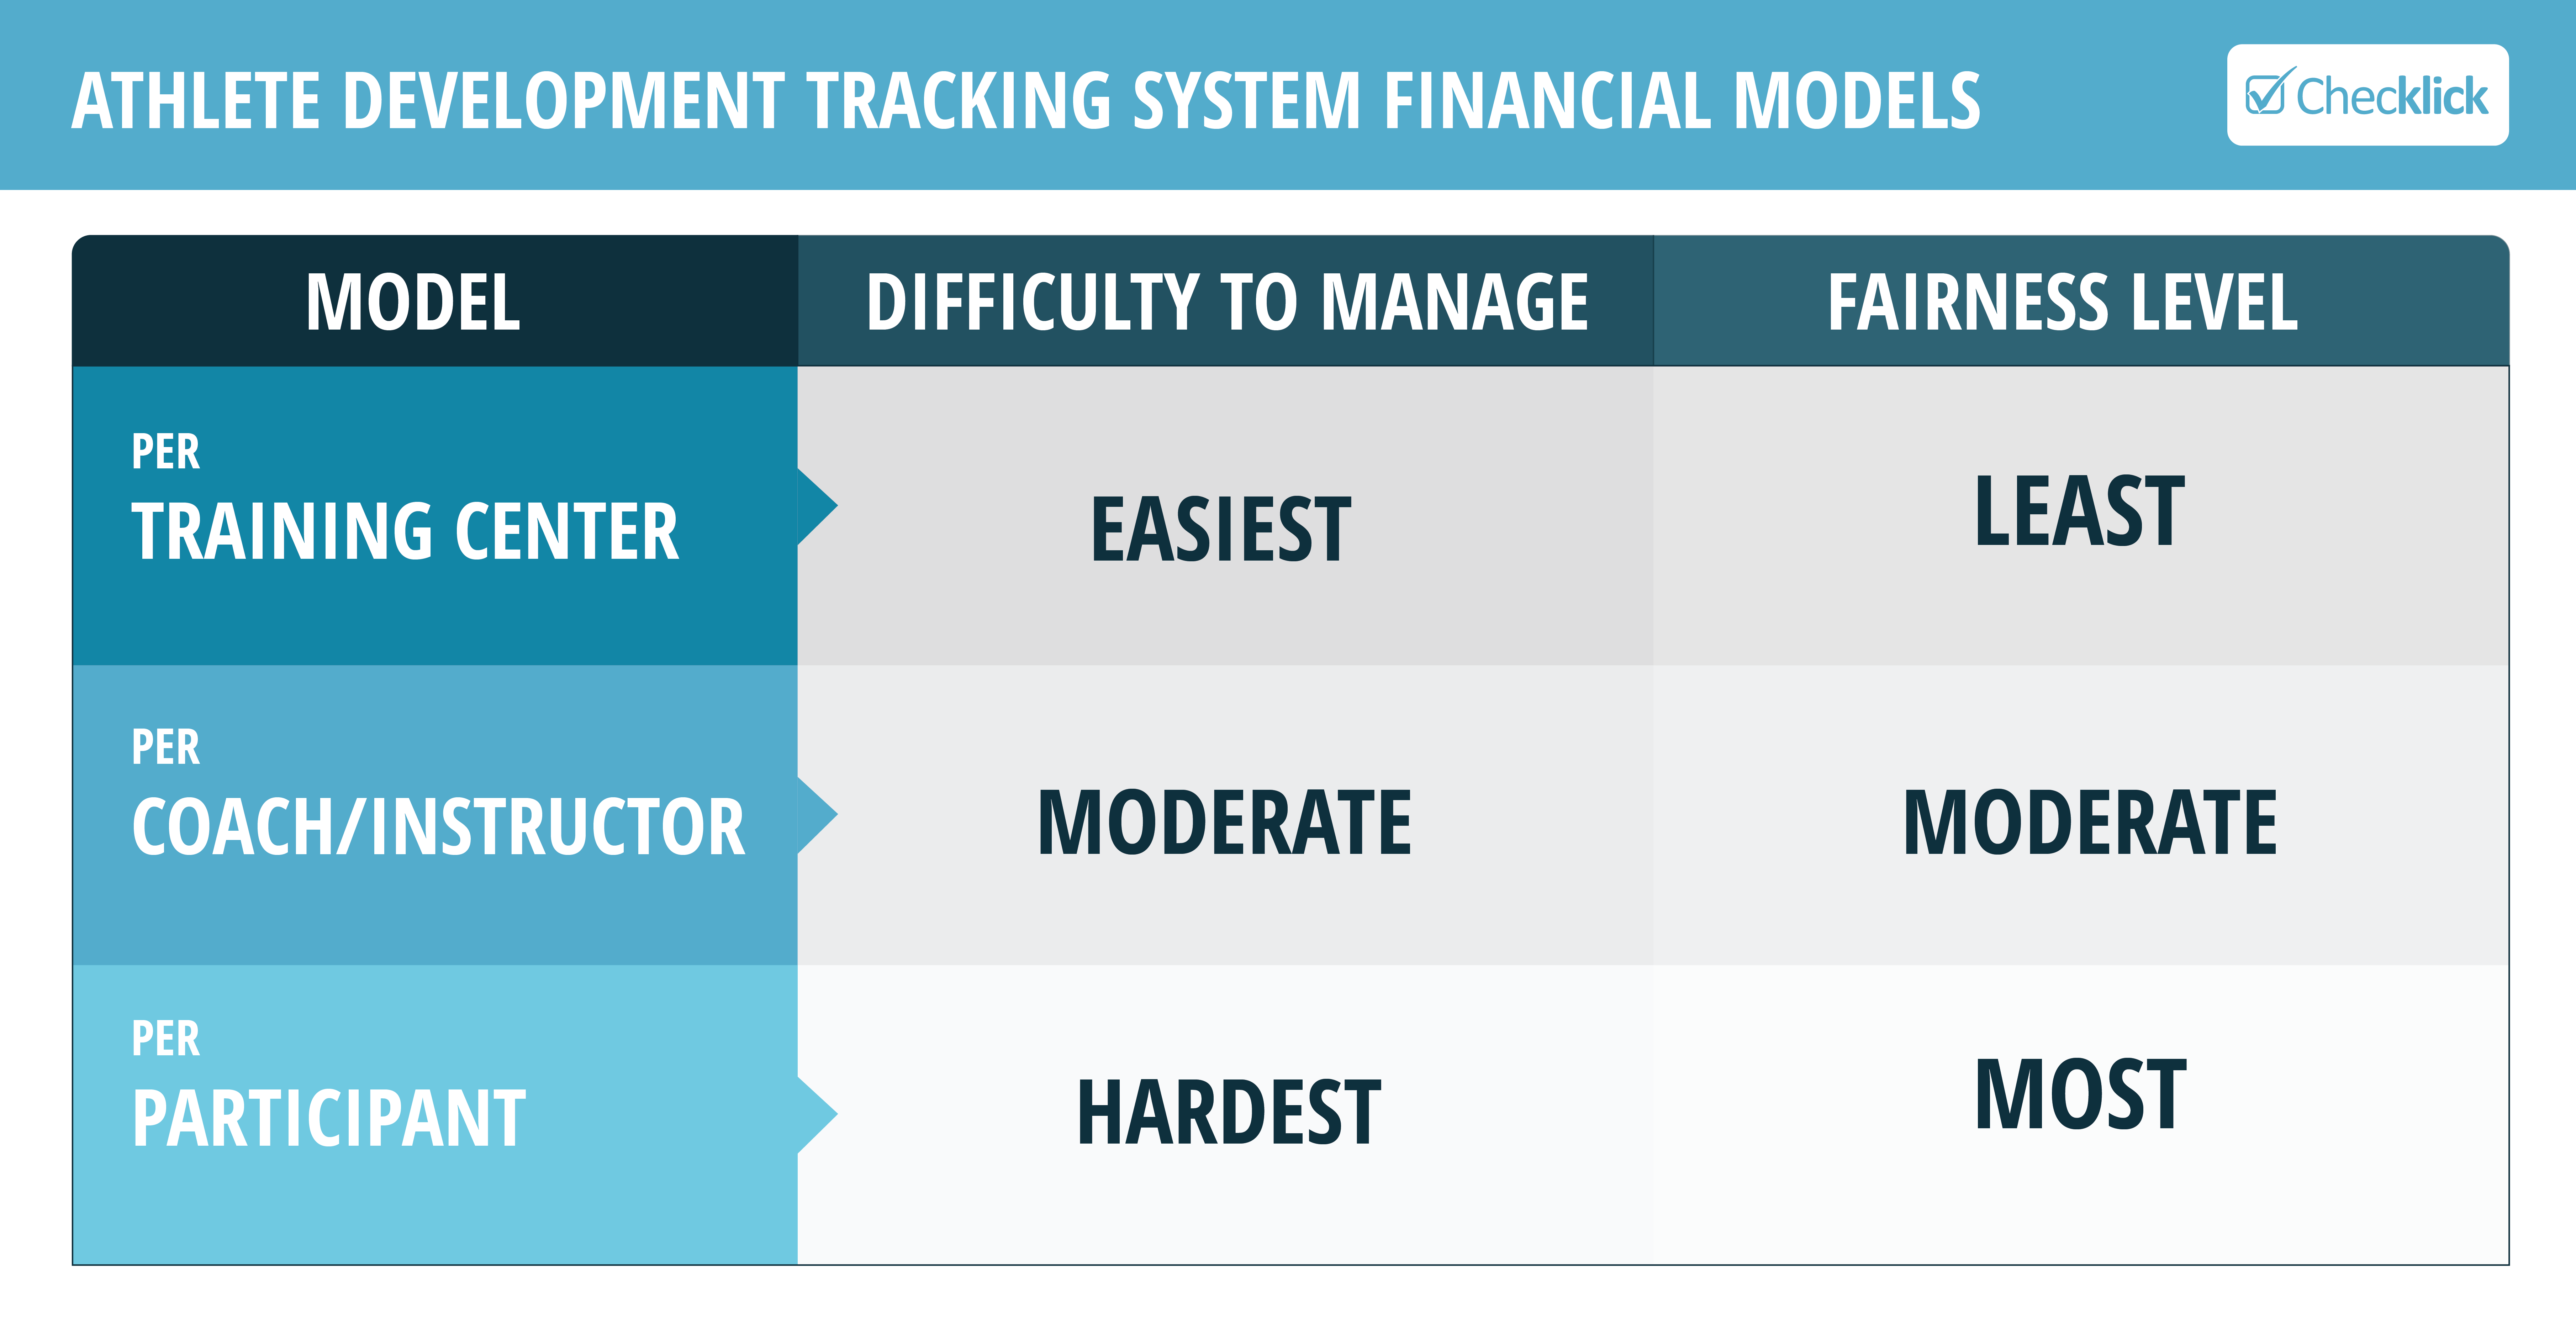 Guidelines for choosing the most viable Financial Model for athlete development programs